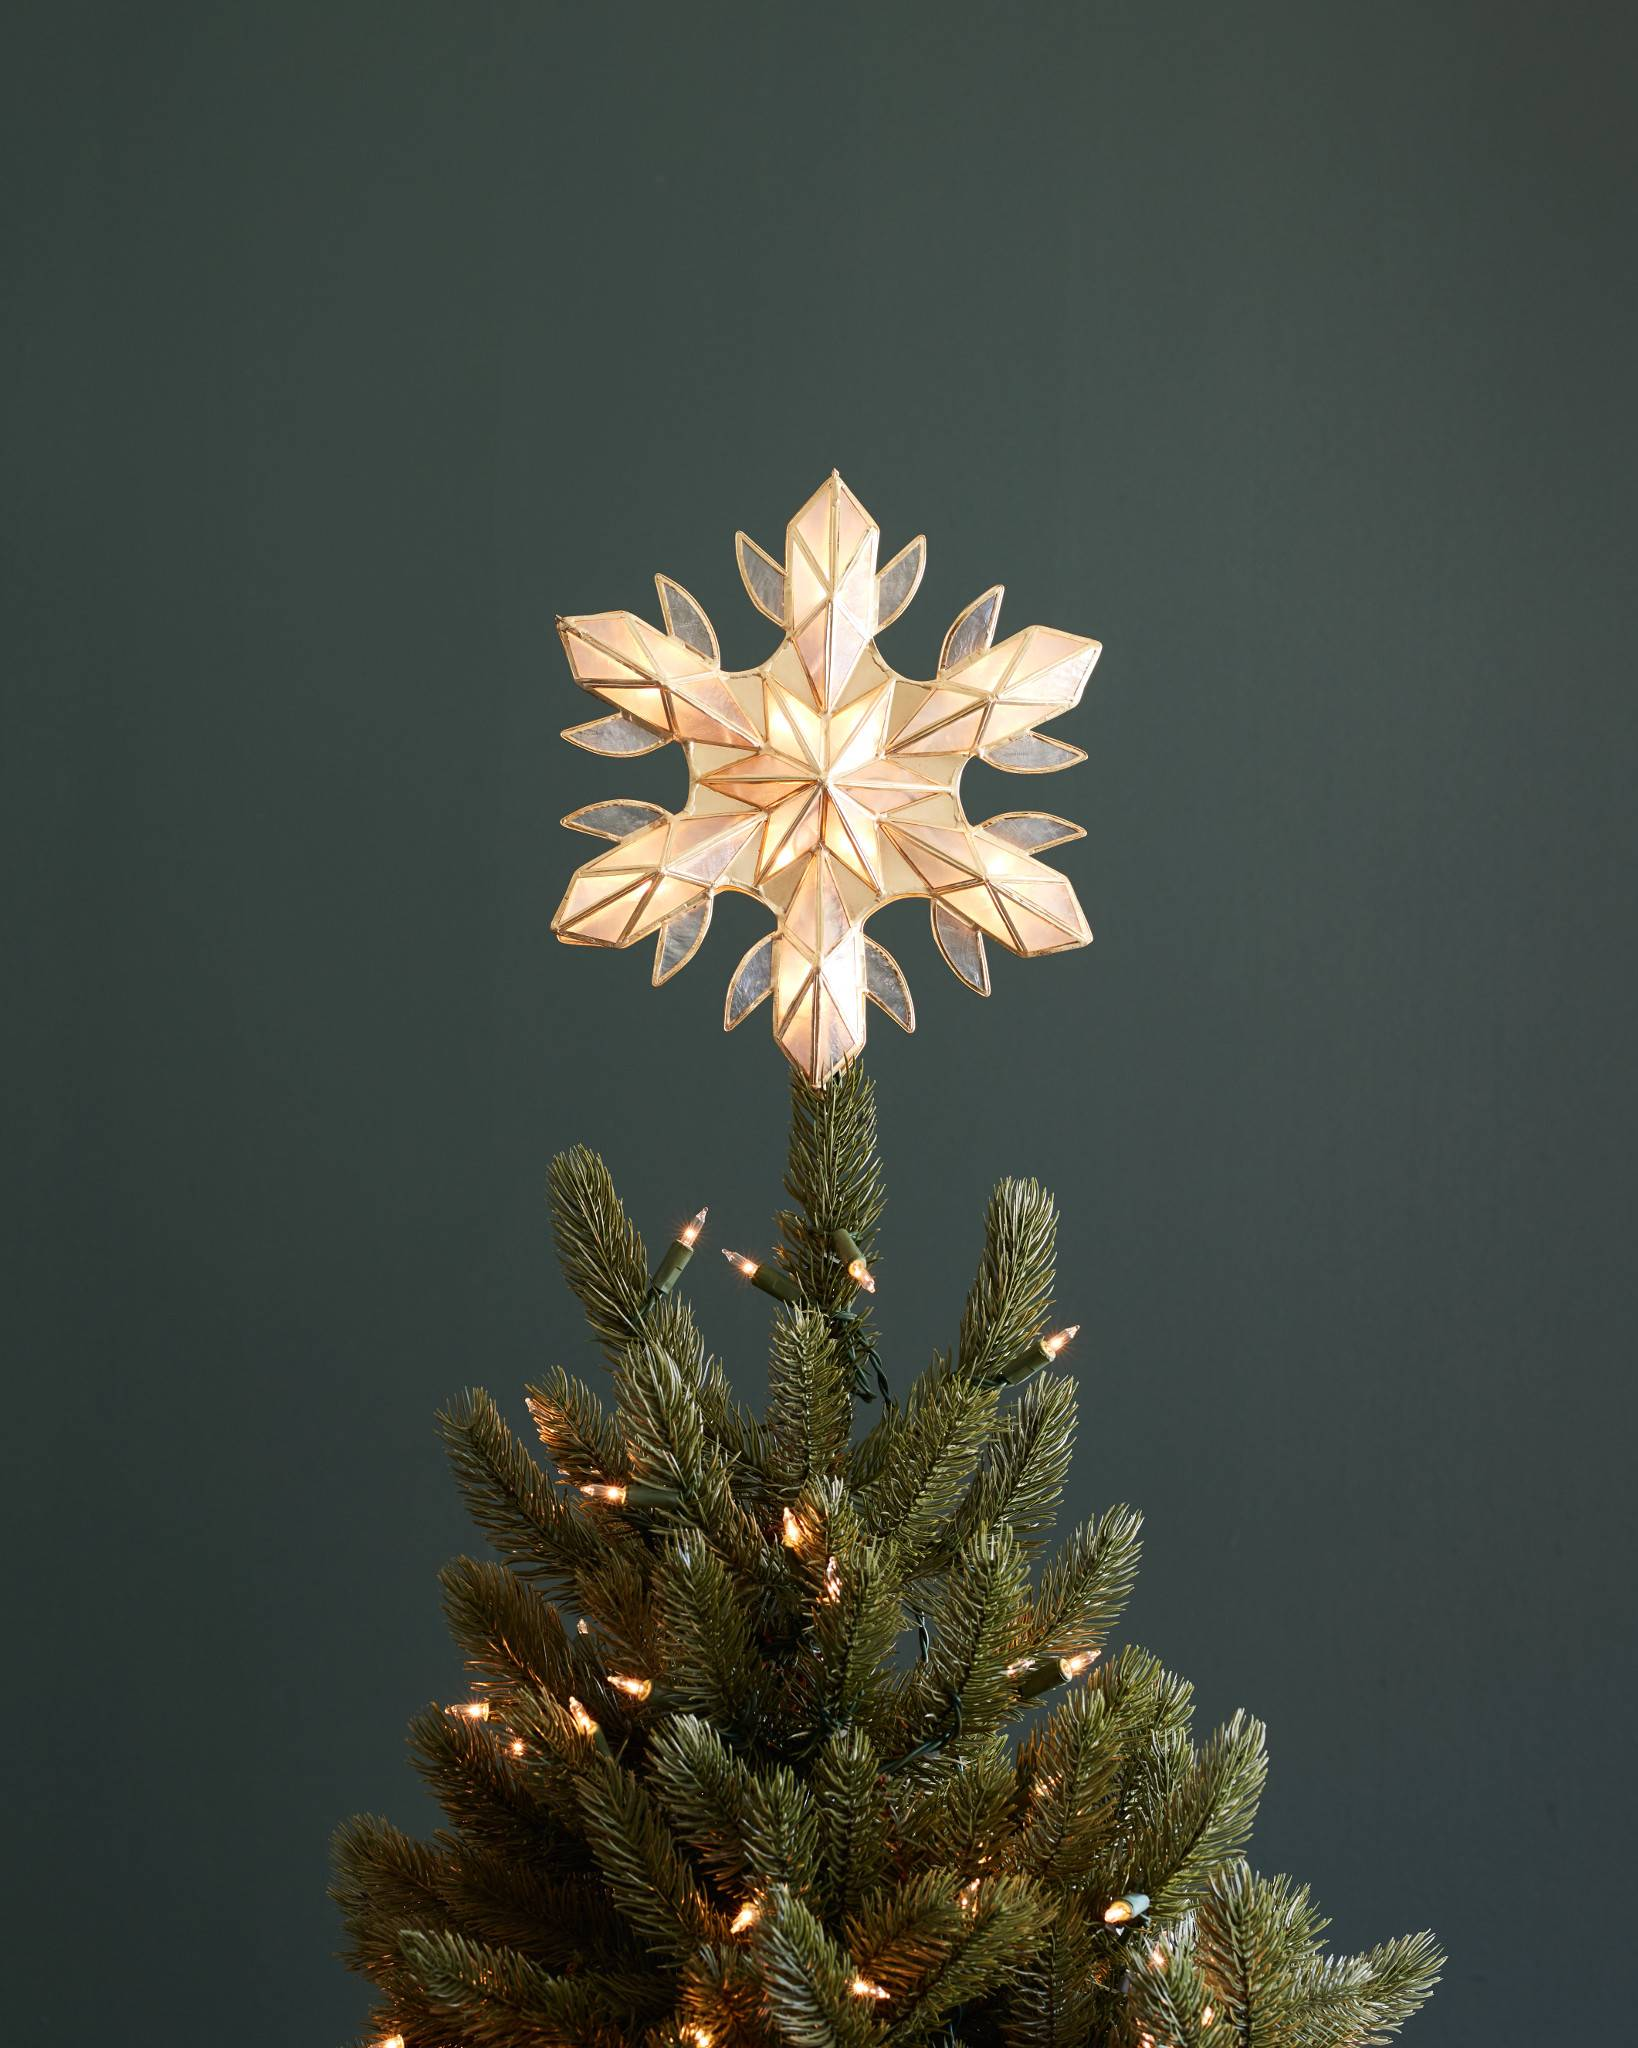 capiz snowflake lighted tree topper by balsam hill - Lighted Christmas Tree Topper